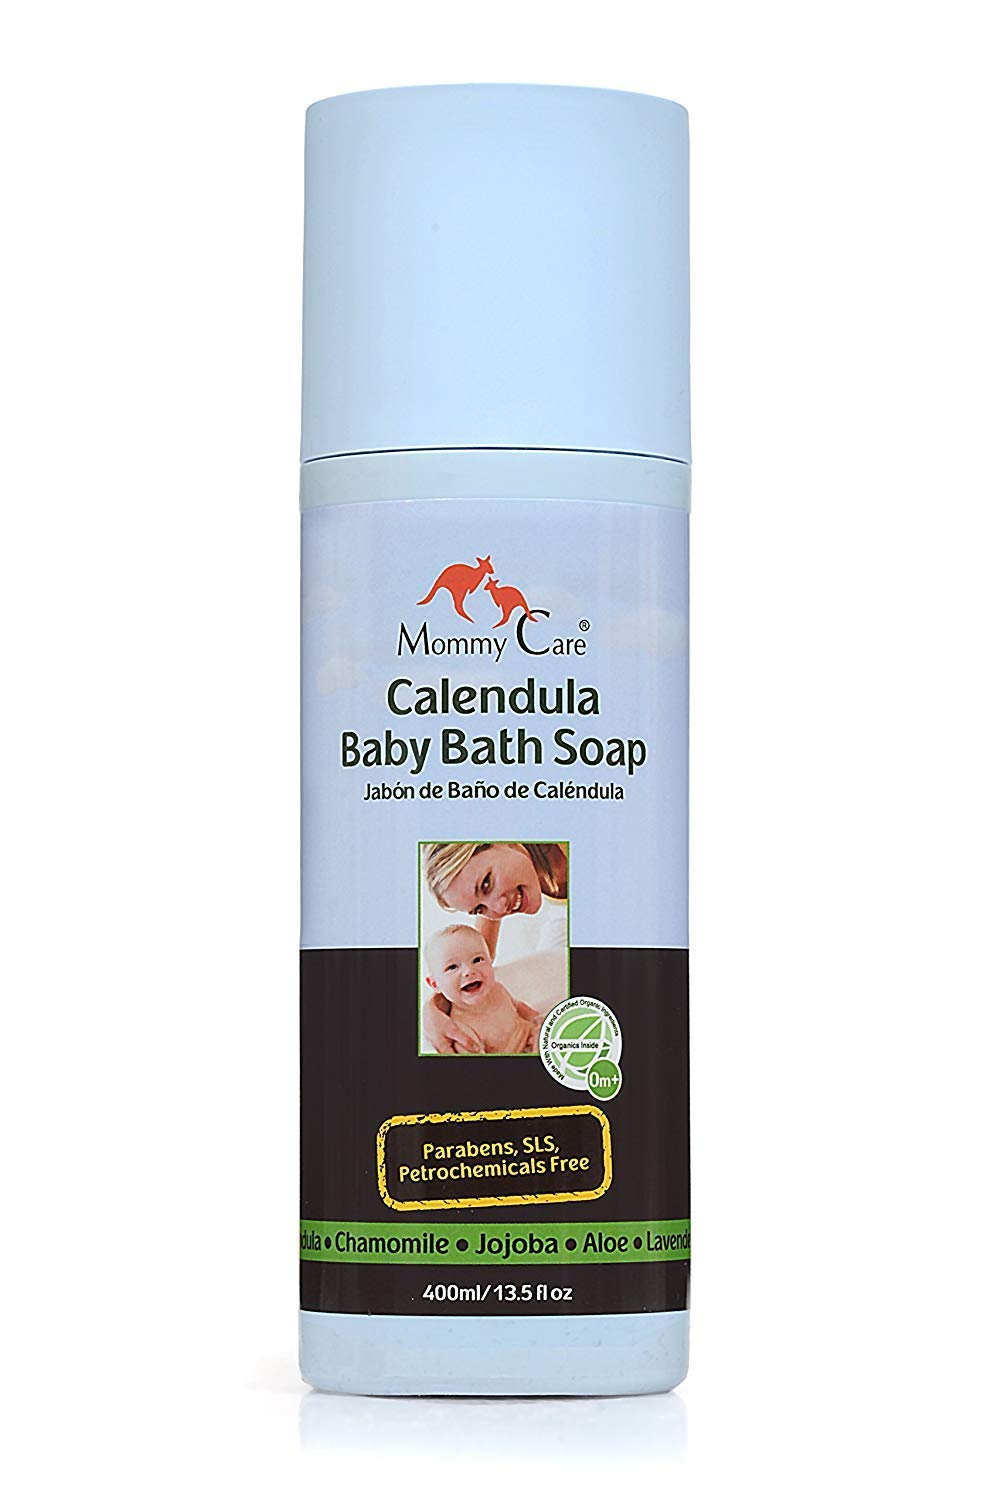 Baby Bath Soap Certified Organic [Mommy Care] Calendula Body Wash for Babies All Skin Types Great for Eczema and Dry Skin [SLS and Paraben Free] (13.52 fl.oz) by MOMMY CARE